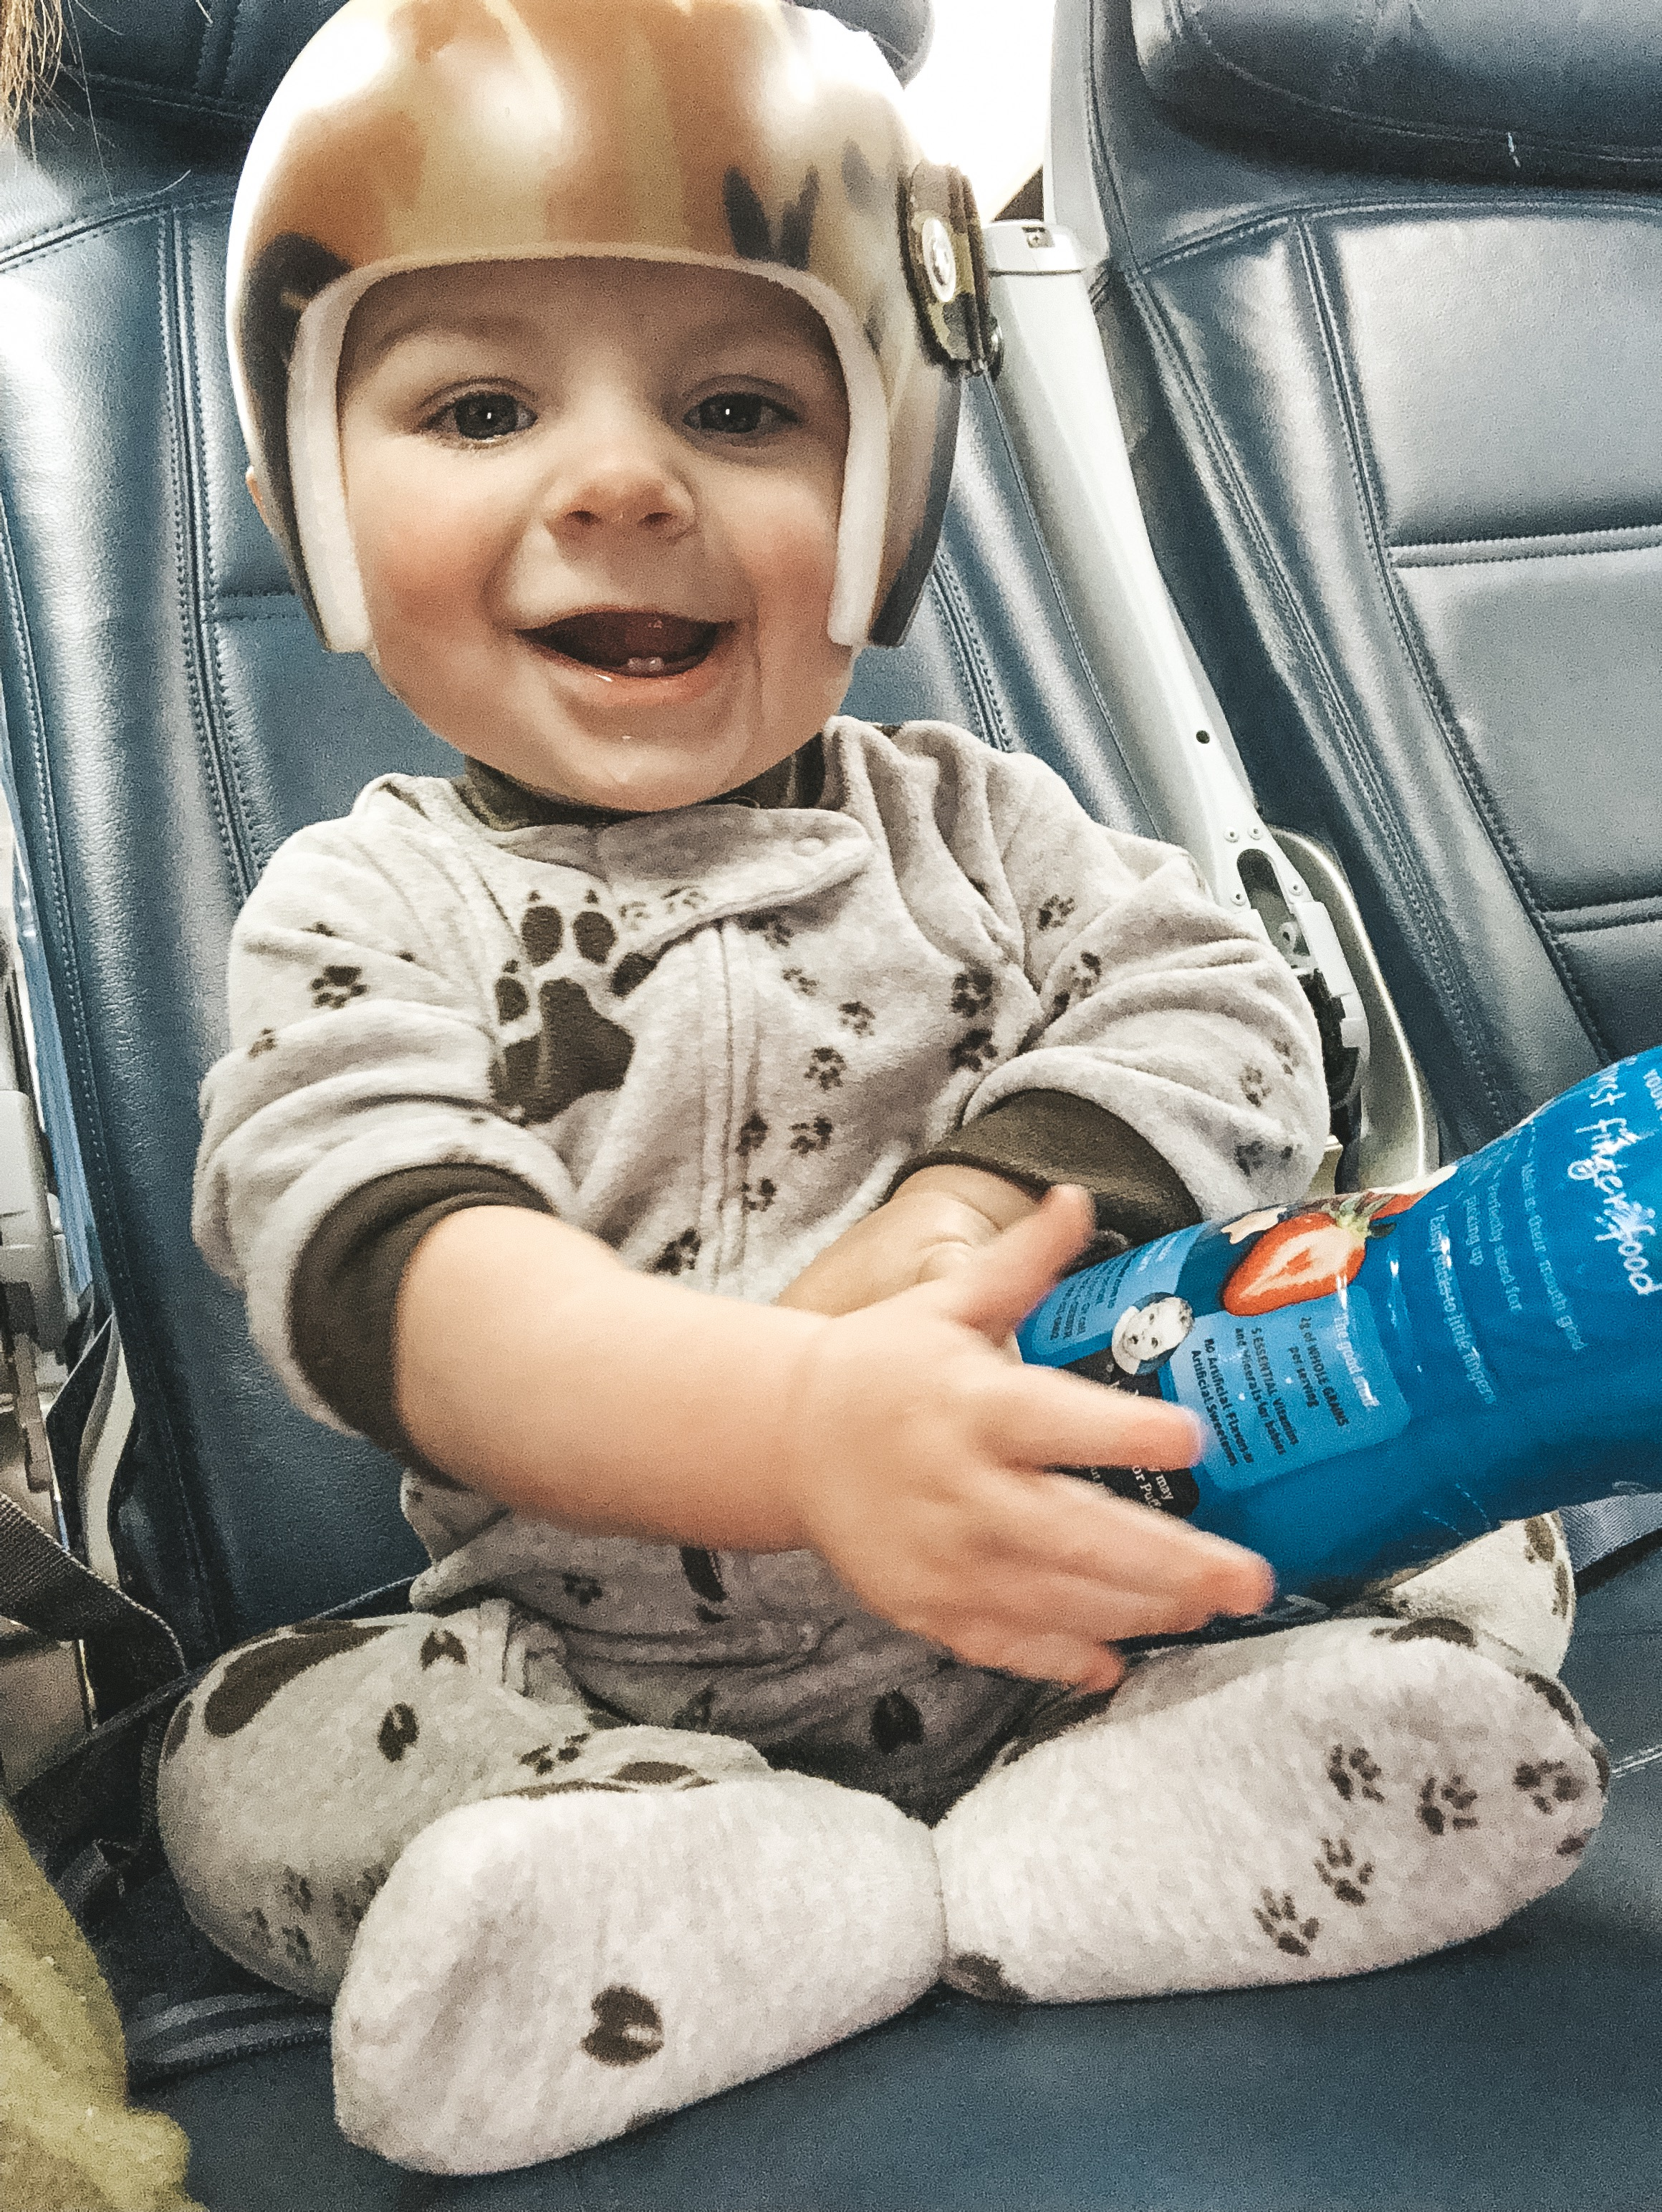 Jett Jones, 8 Months Old.  Flying with an 8 Month Old. Helmet treatment for Plagiocephaly.